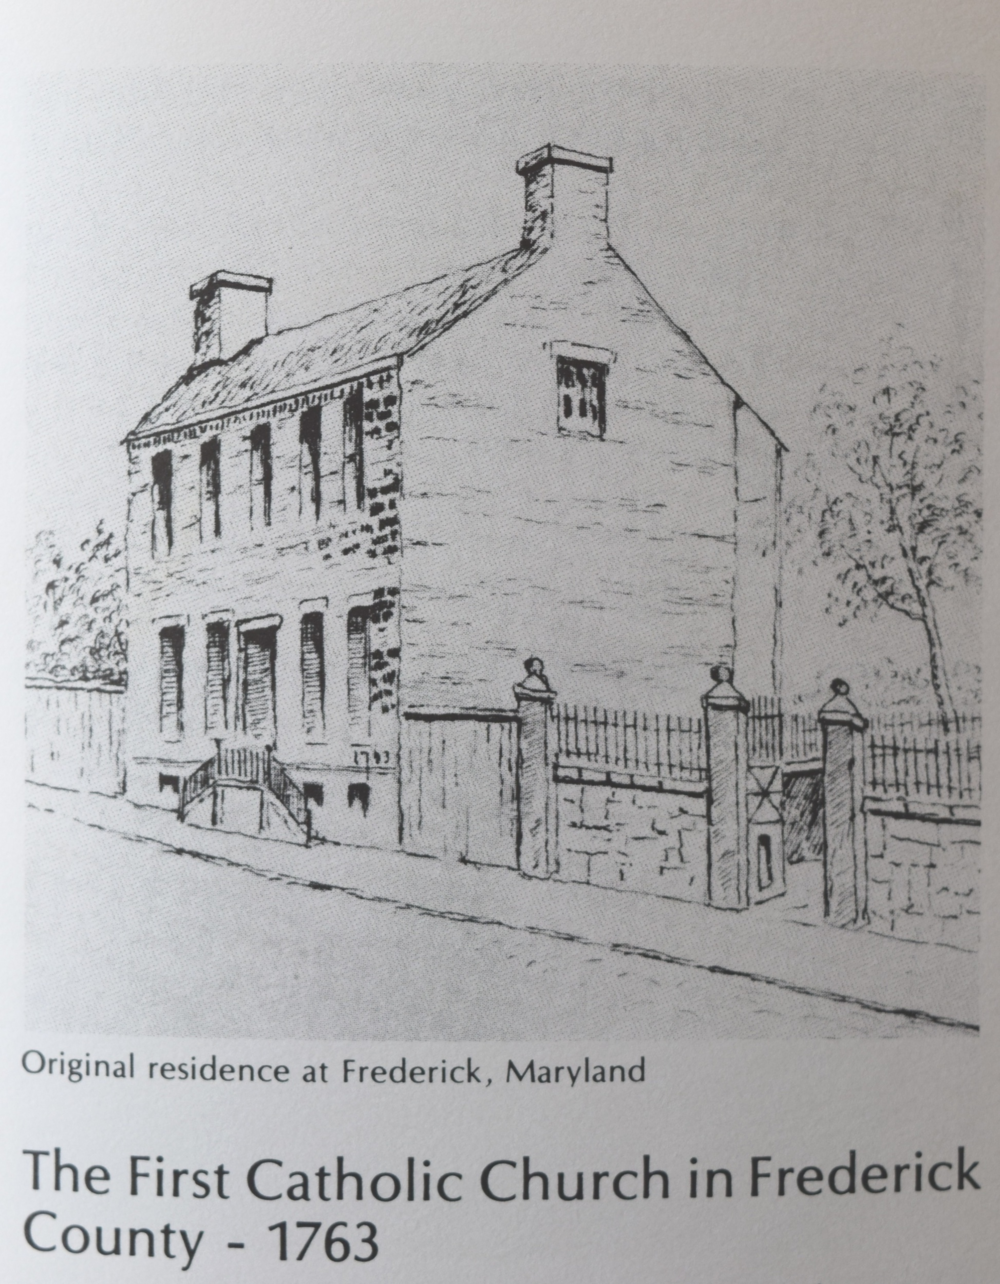 The first worship space was established in the spring of 1763 in Frederick in a small brick home on the north side of Second Street